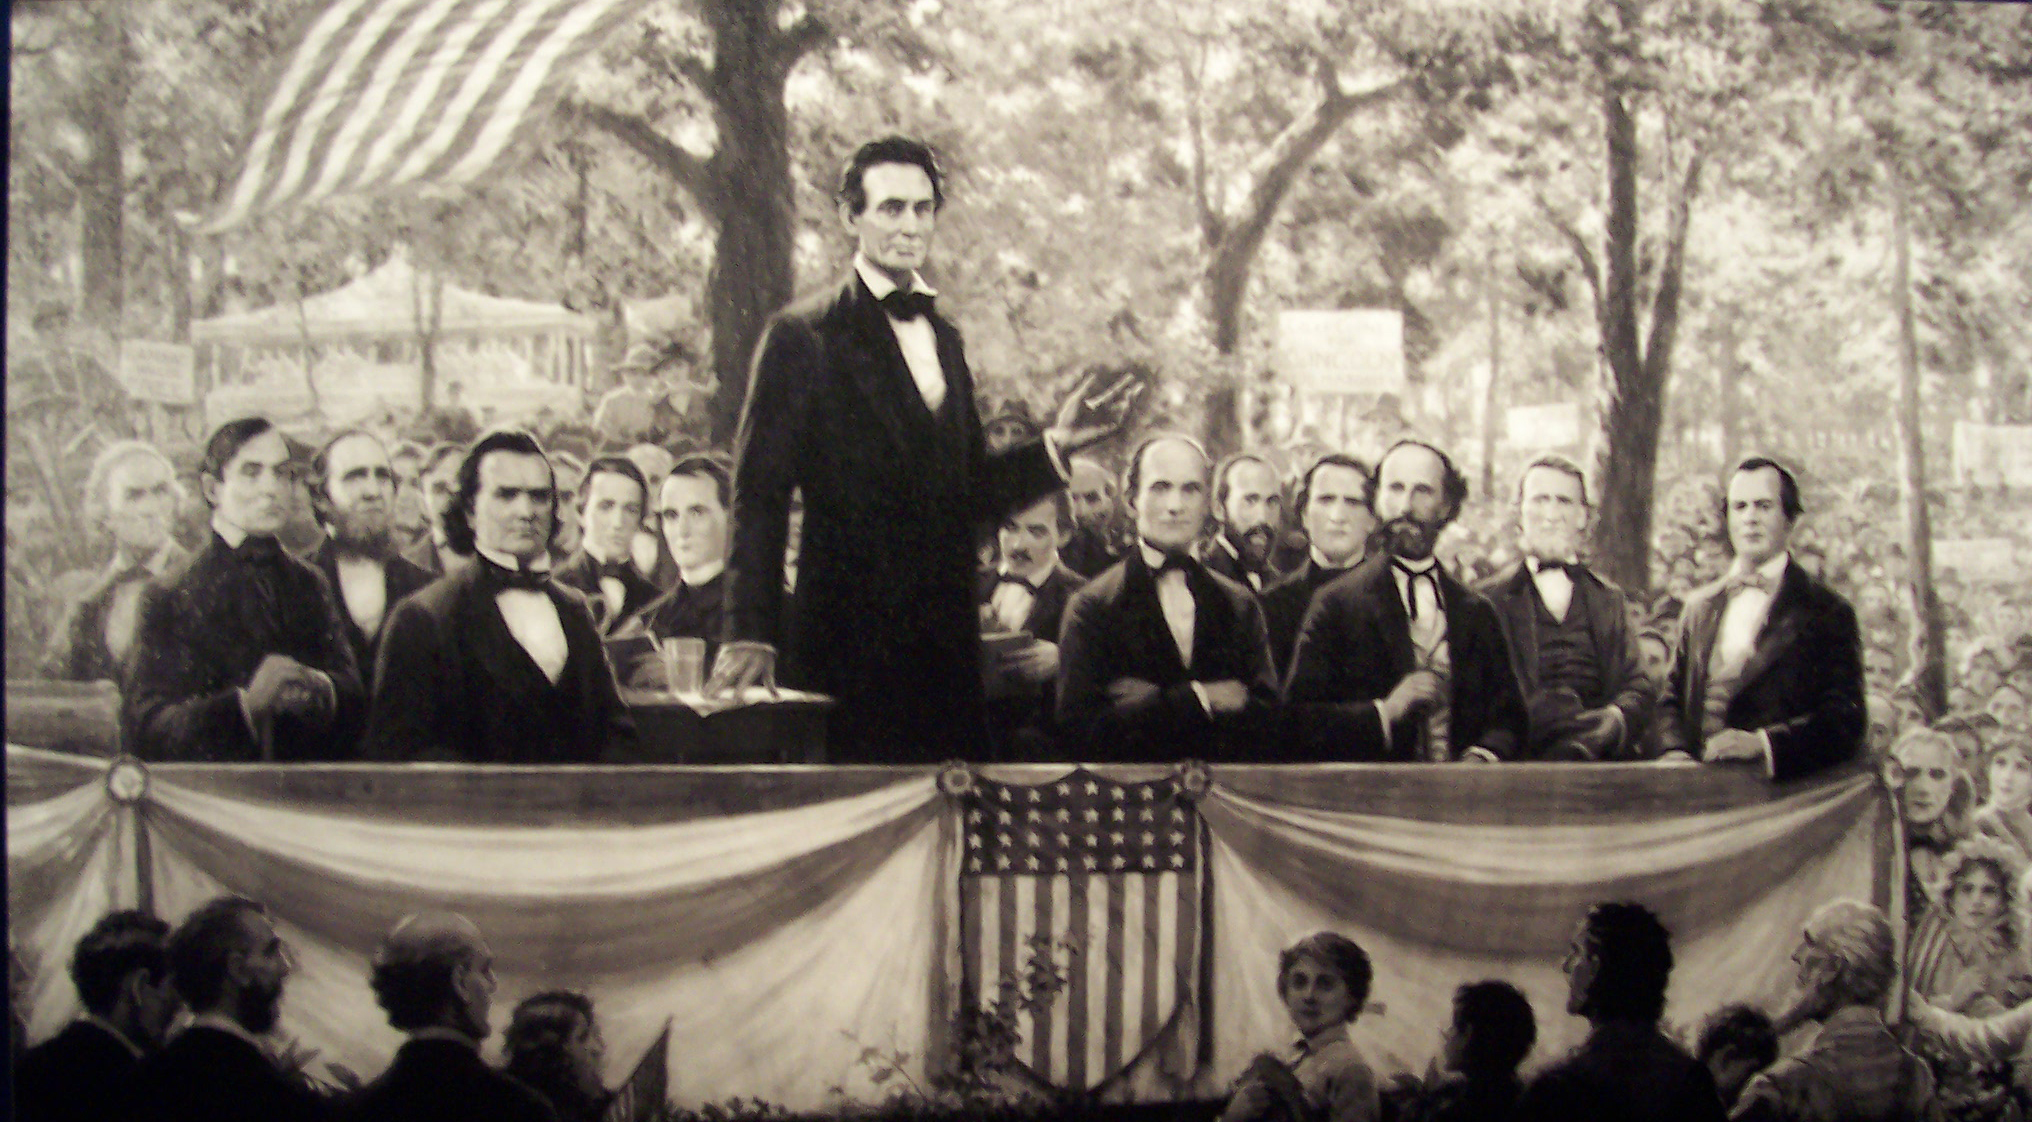 Lincoln at a debate with Stephen Douglas